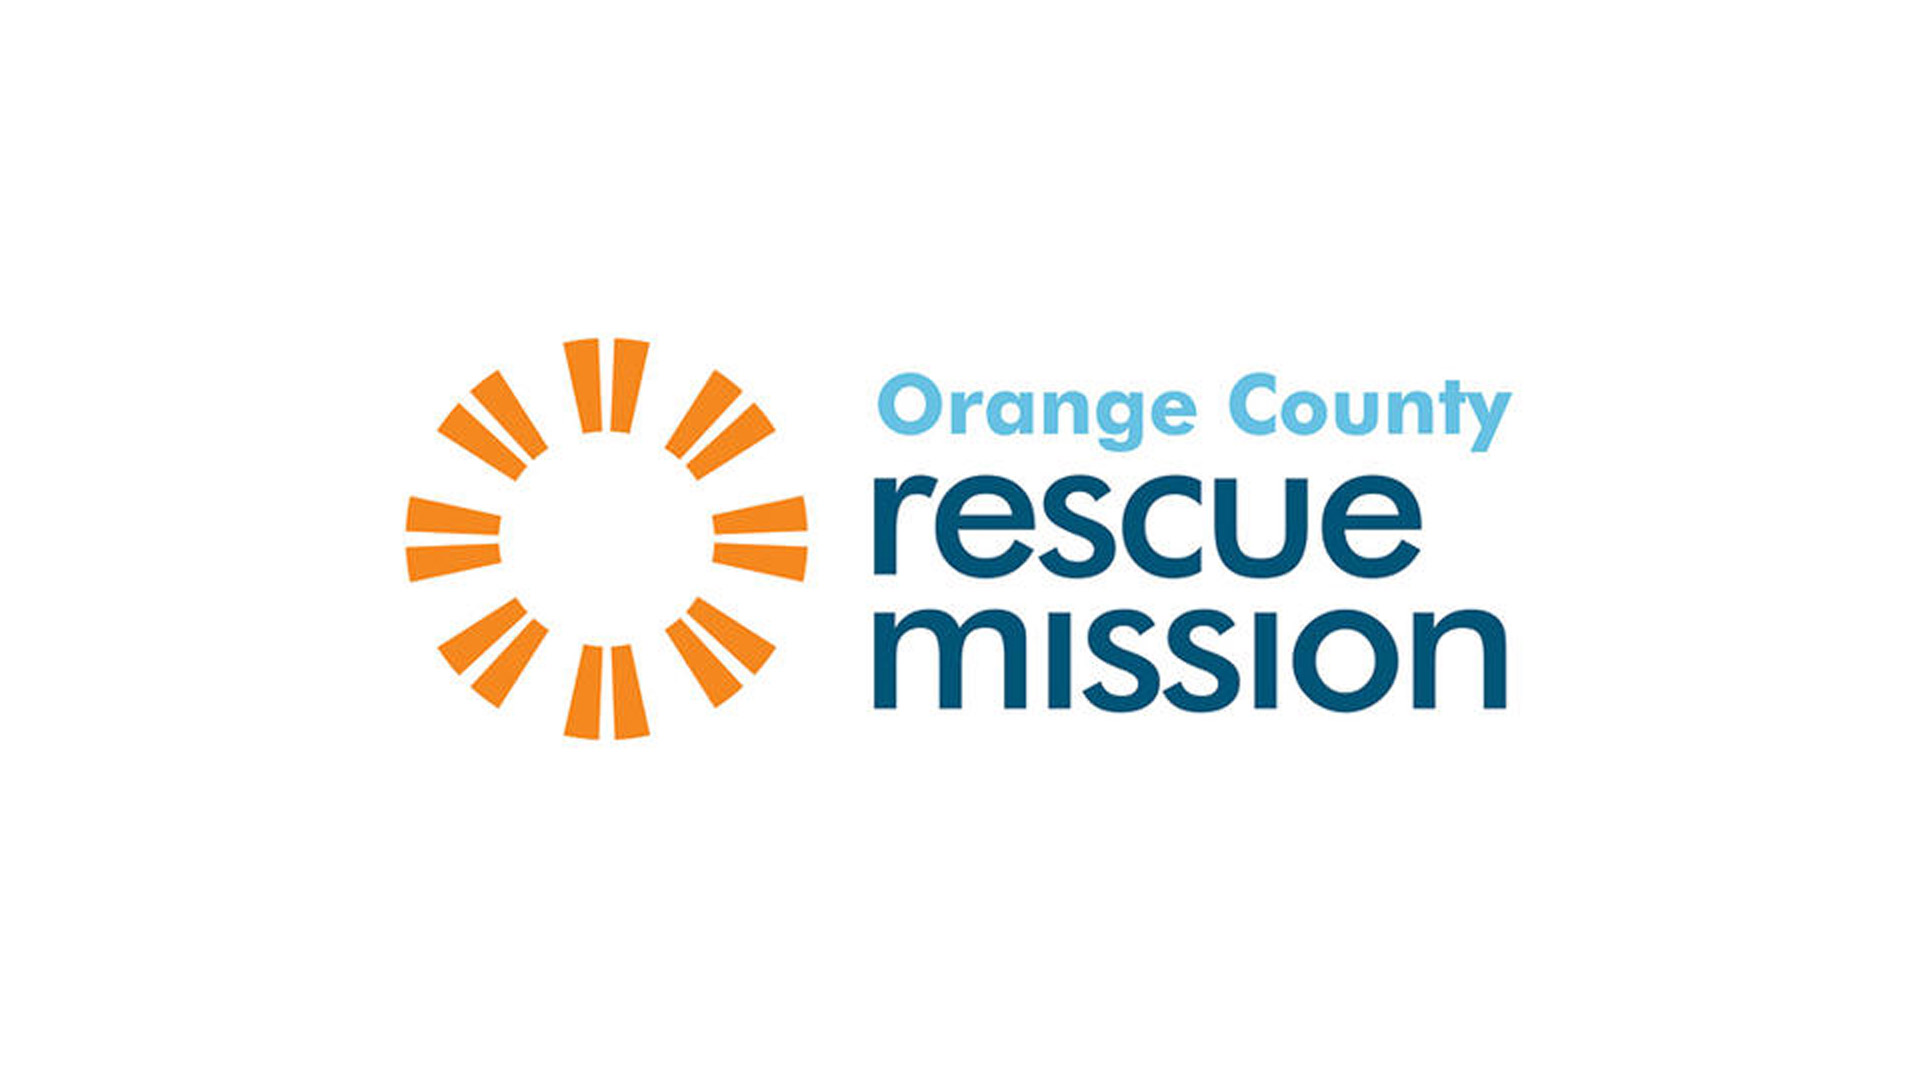 OC Rescue Mission